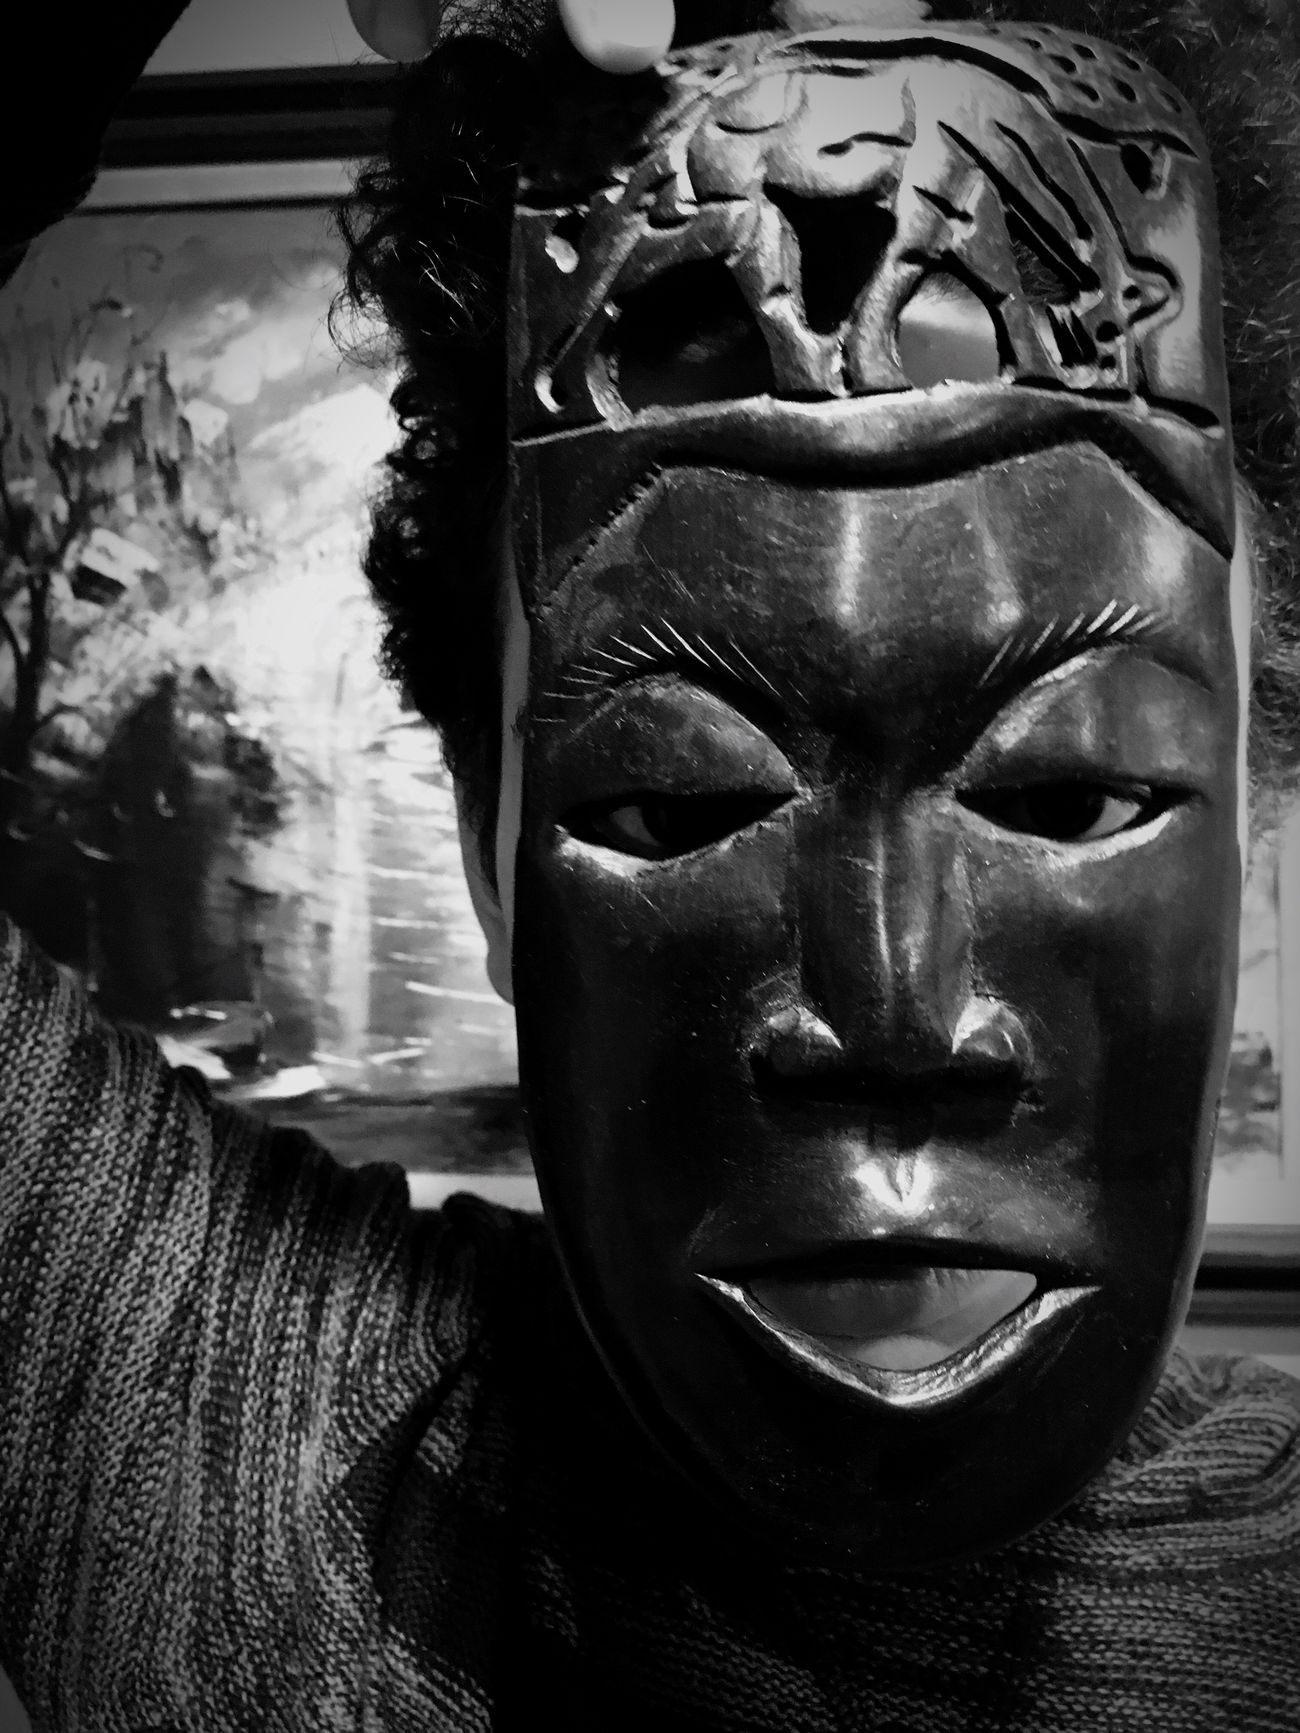 Dark IPhoneography Art ArtWork Human Representation Mask Hidden Black Blackandwhite Photography Form Shadow Gray Face Mask - Disguise Masks Eyes Male Likeness No People Silouette Countenance Africa Darkness